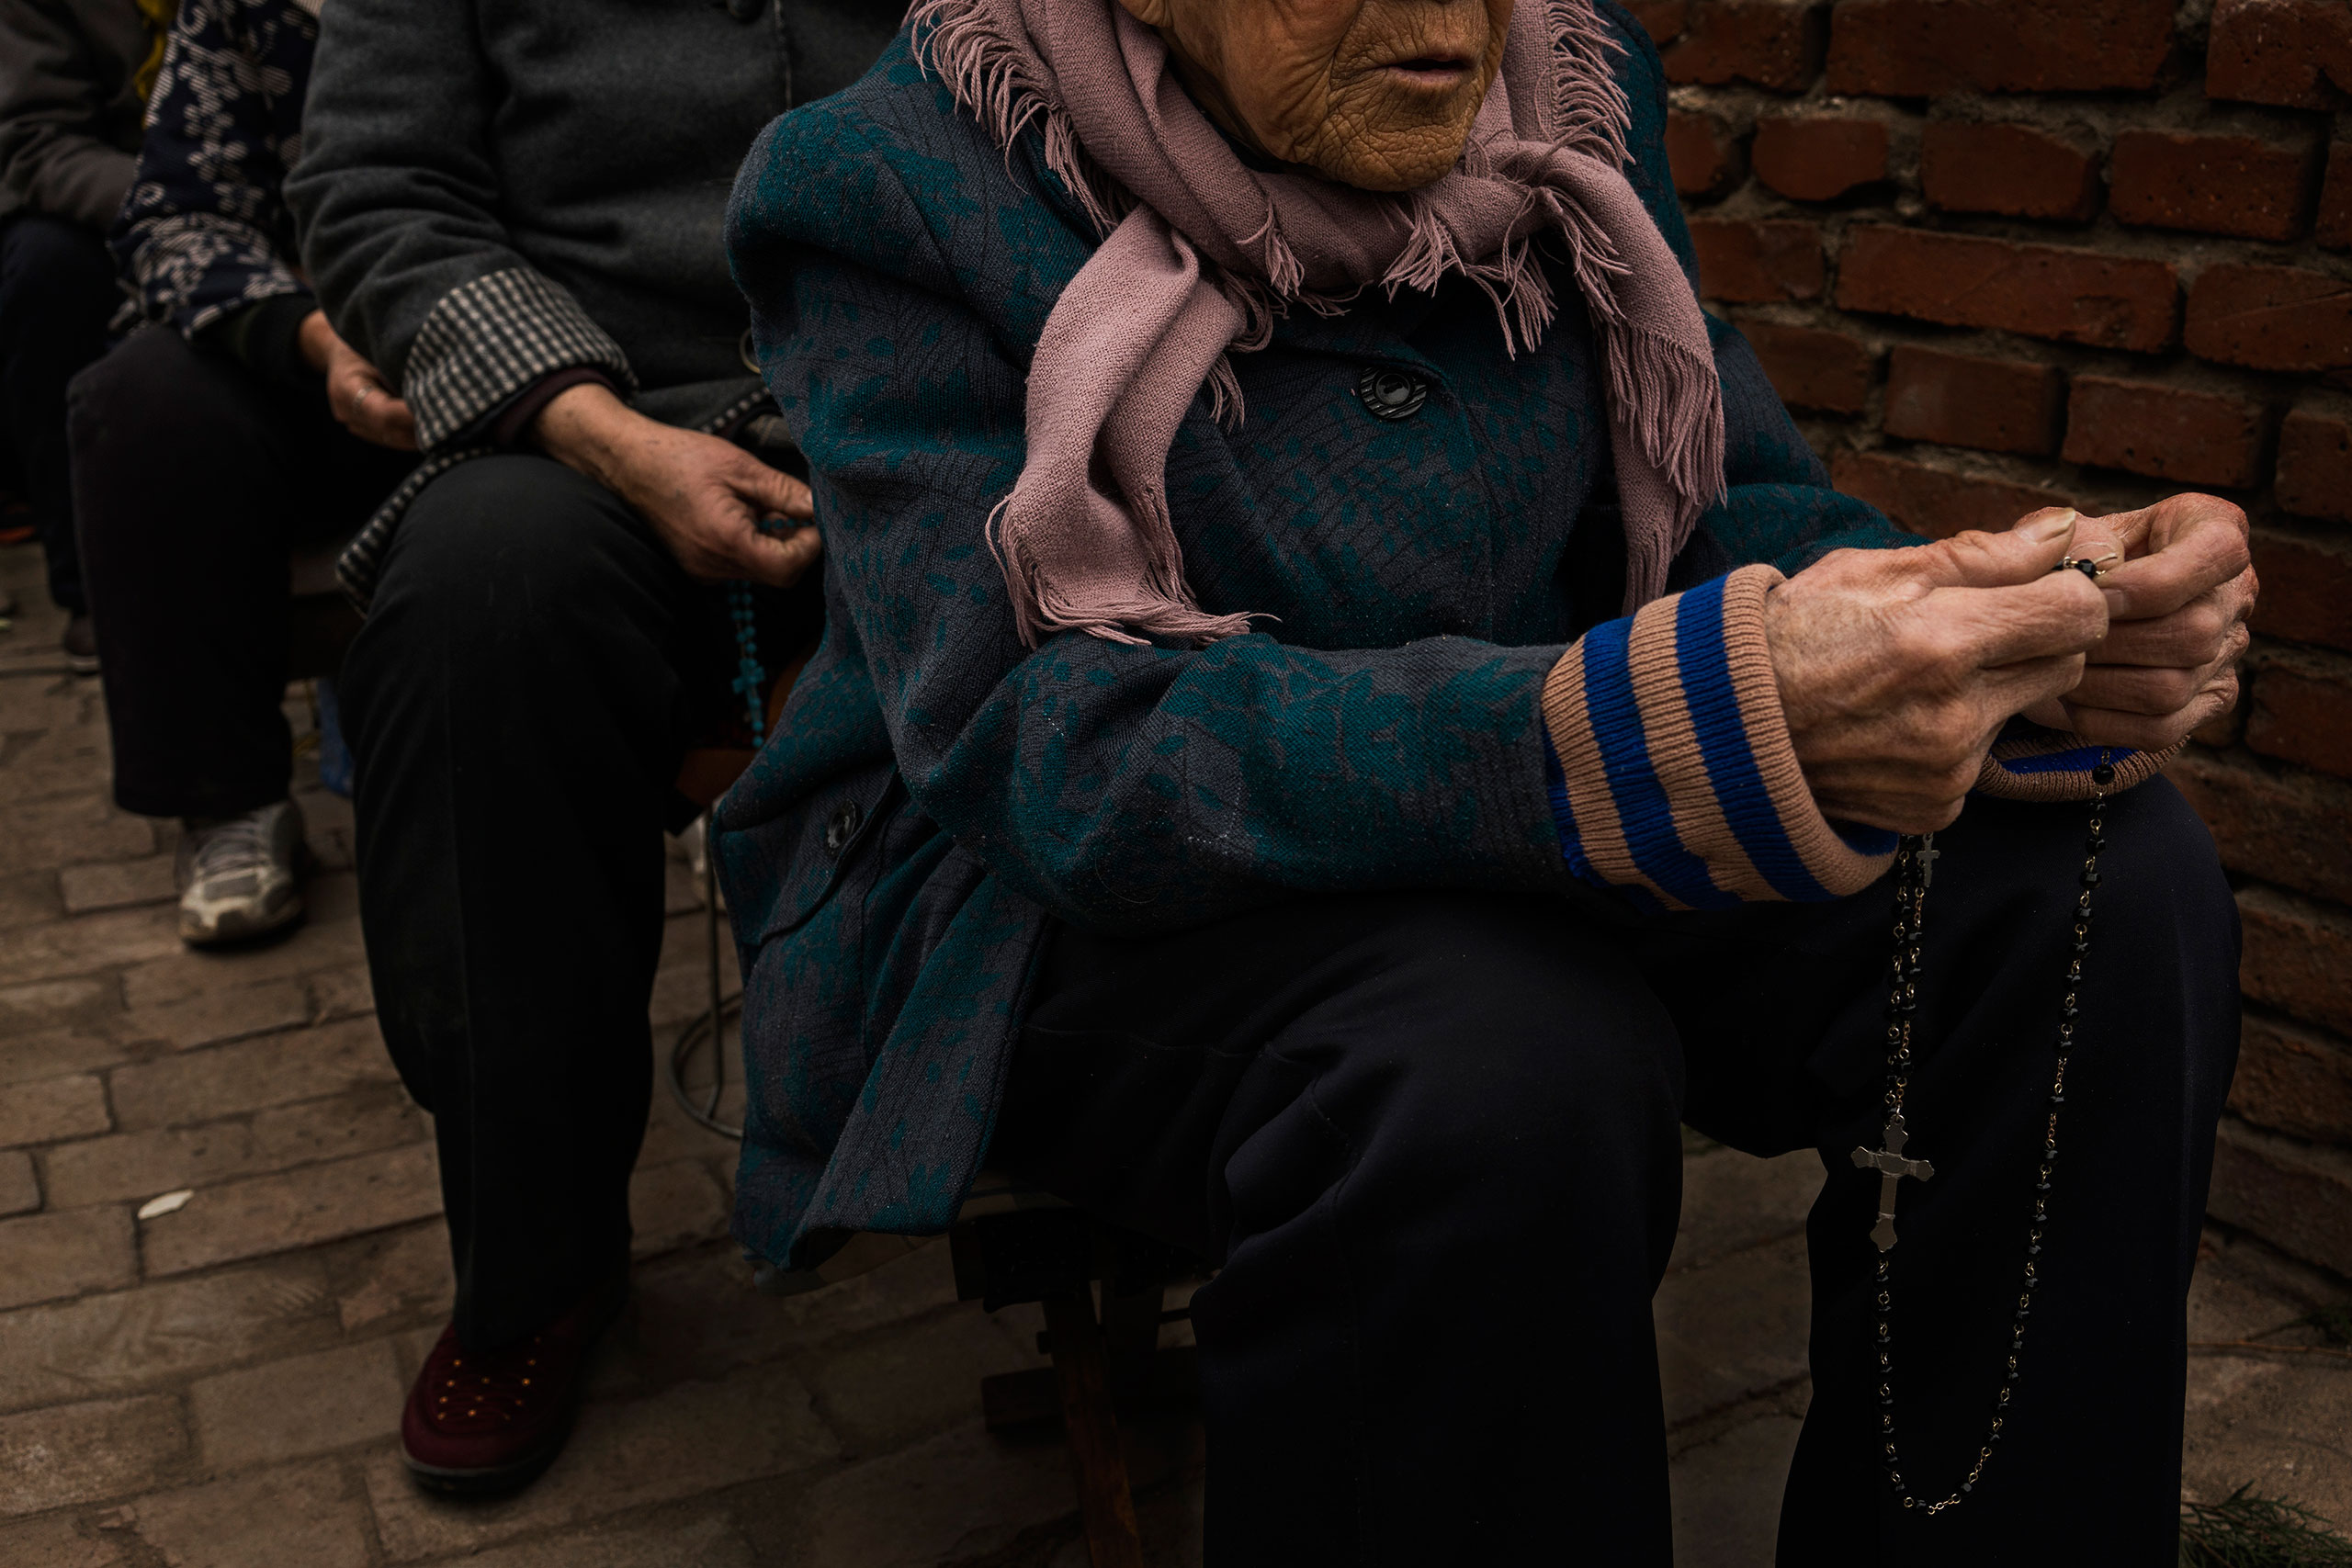 A parishioner thumbs her Rosemary beads during an underground Palm Sunday service in the yard of a house in Youtong village, Shijiazhuang, China, March 20, 2016.